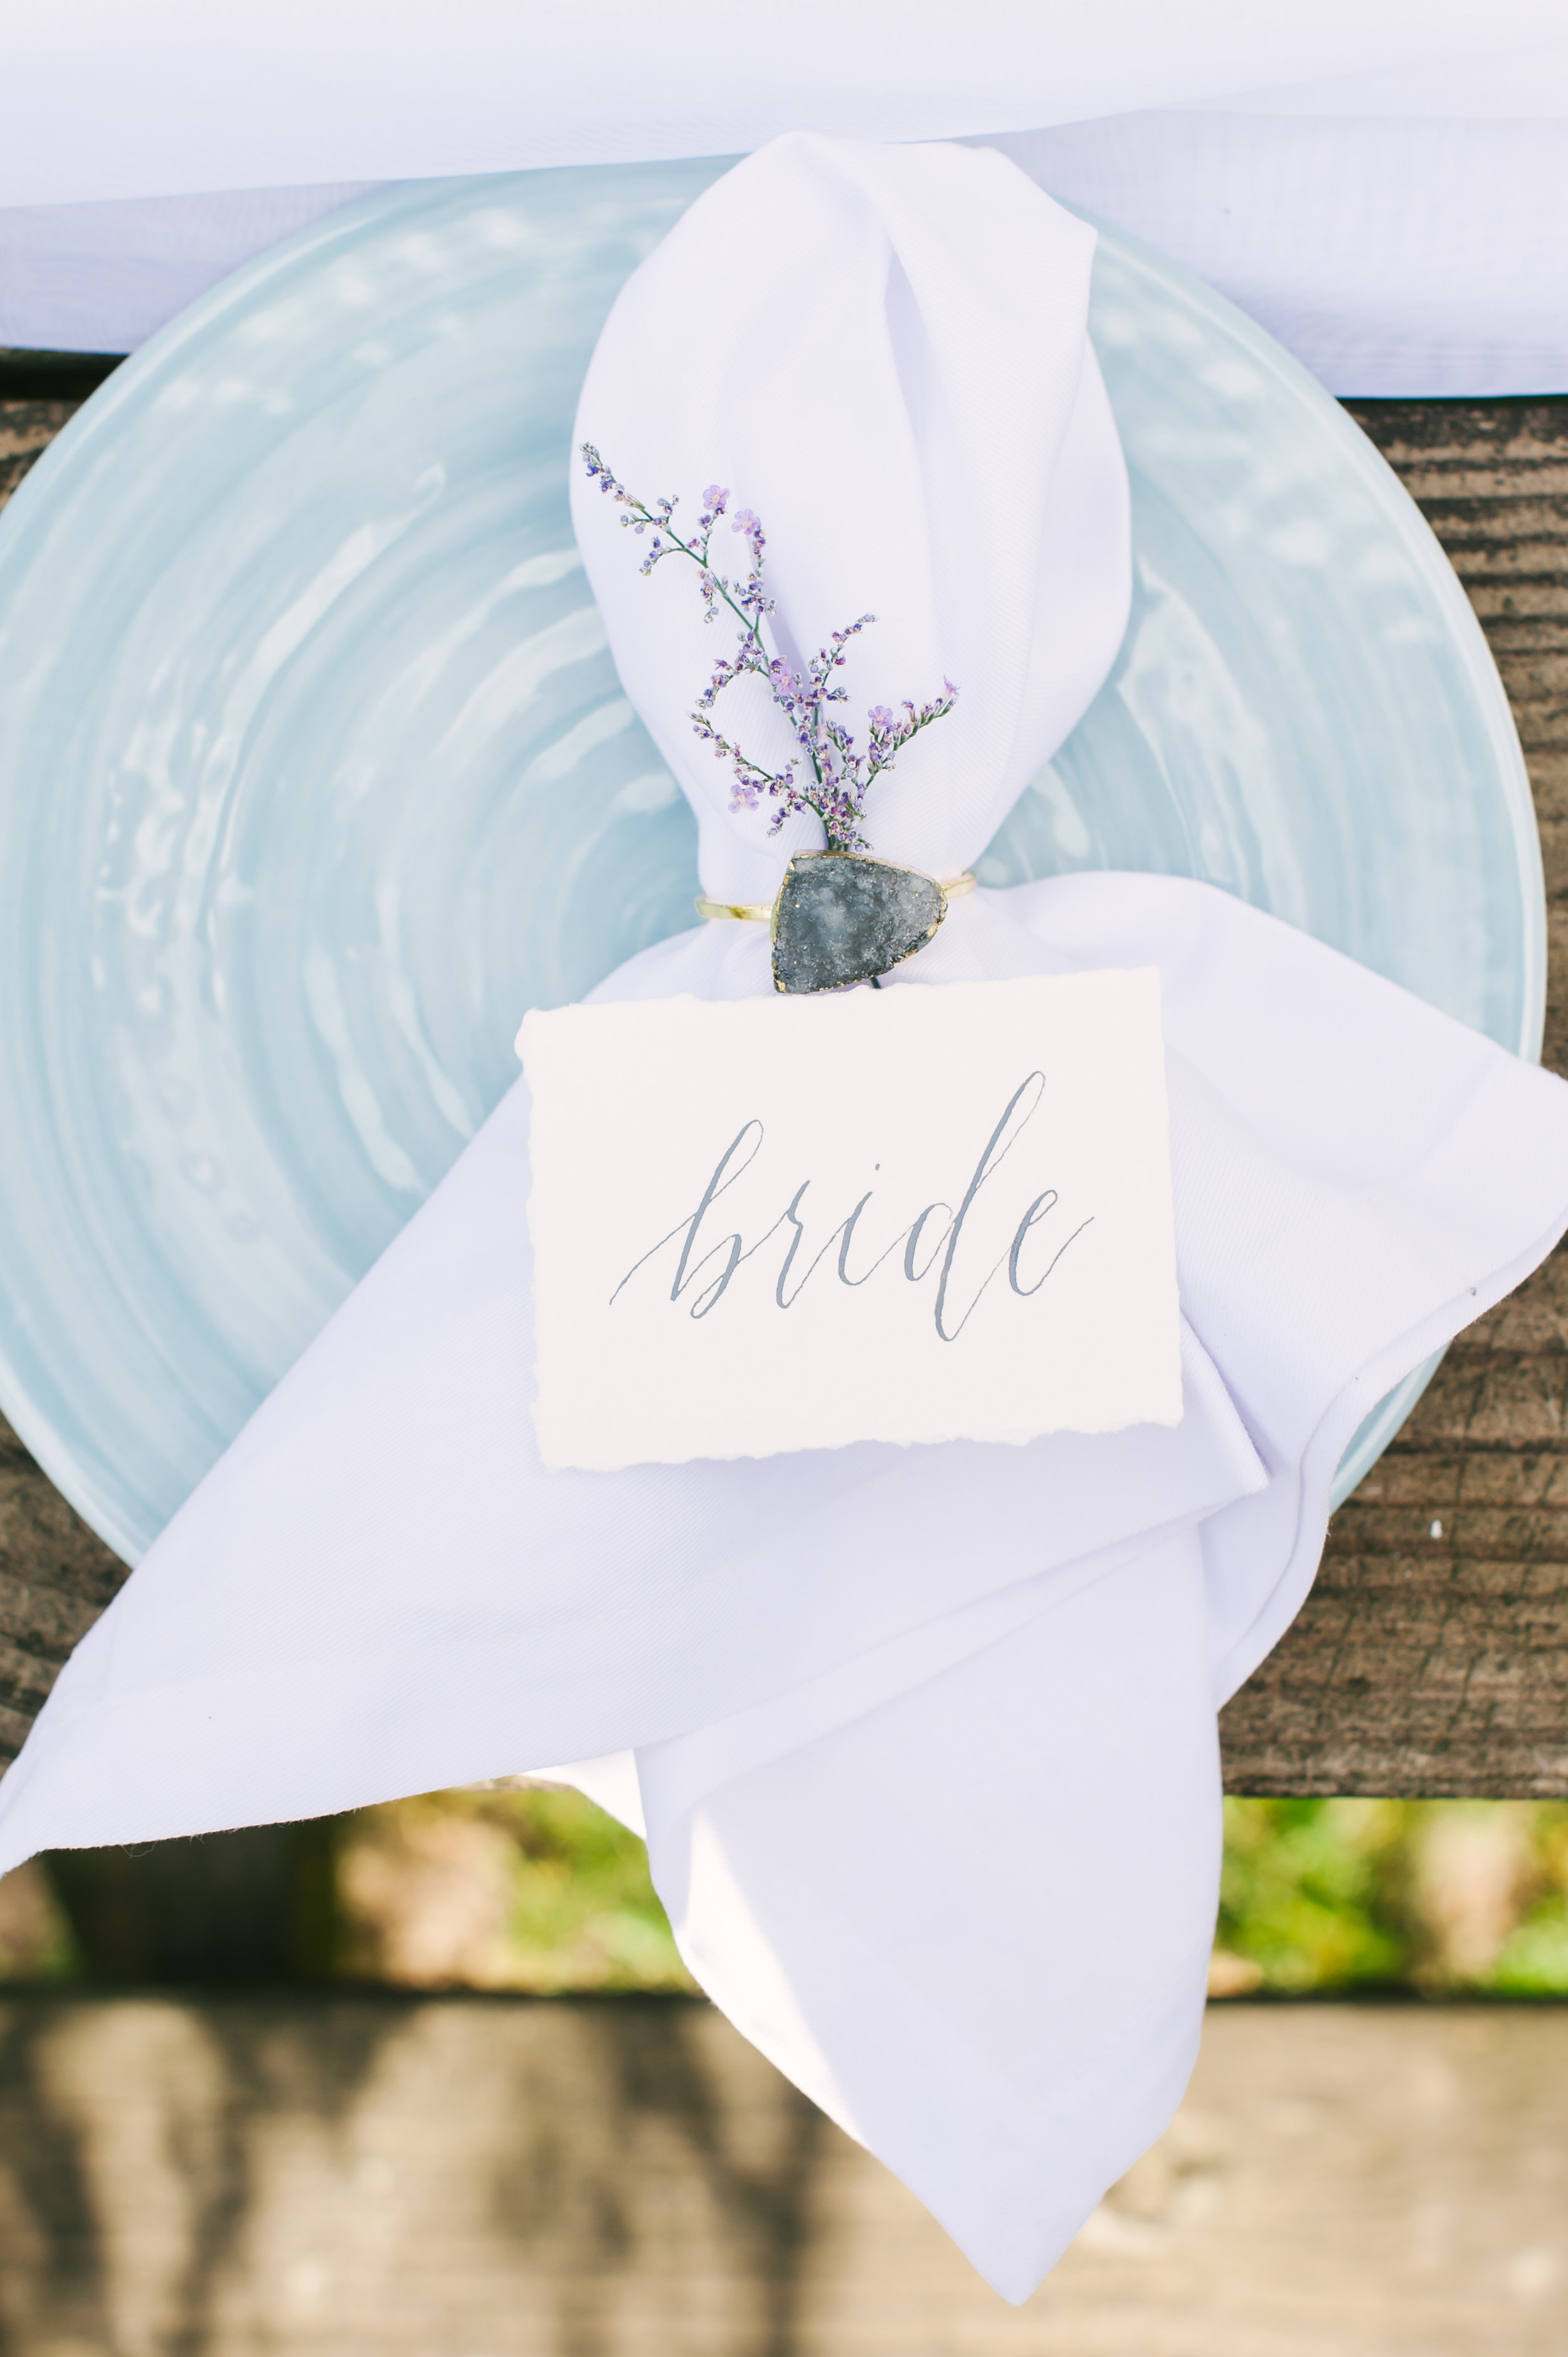 Day-Of-Goods - Menus, place cards, ceremony programs, and more. This is what gets a wedding calligraphers heart thumping. These unique touches are the perfect addition to your special day.